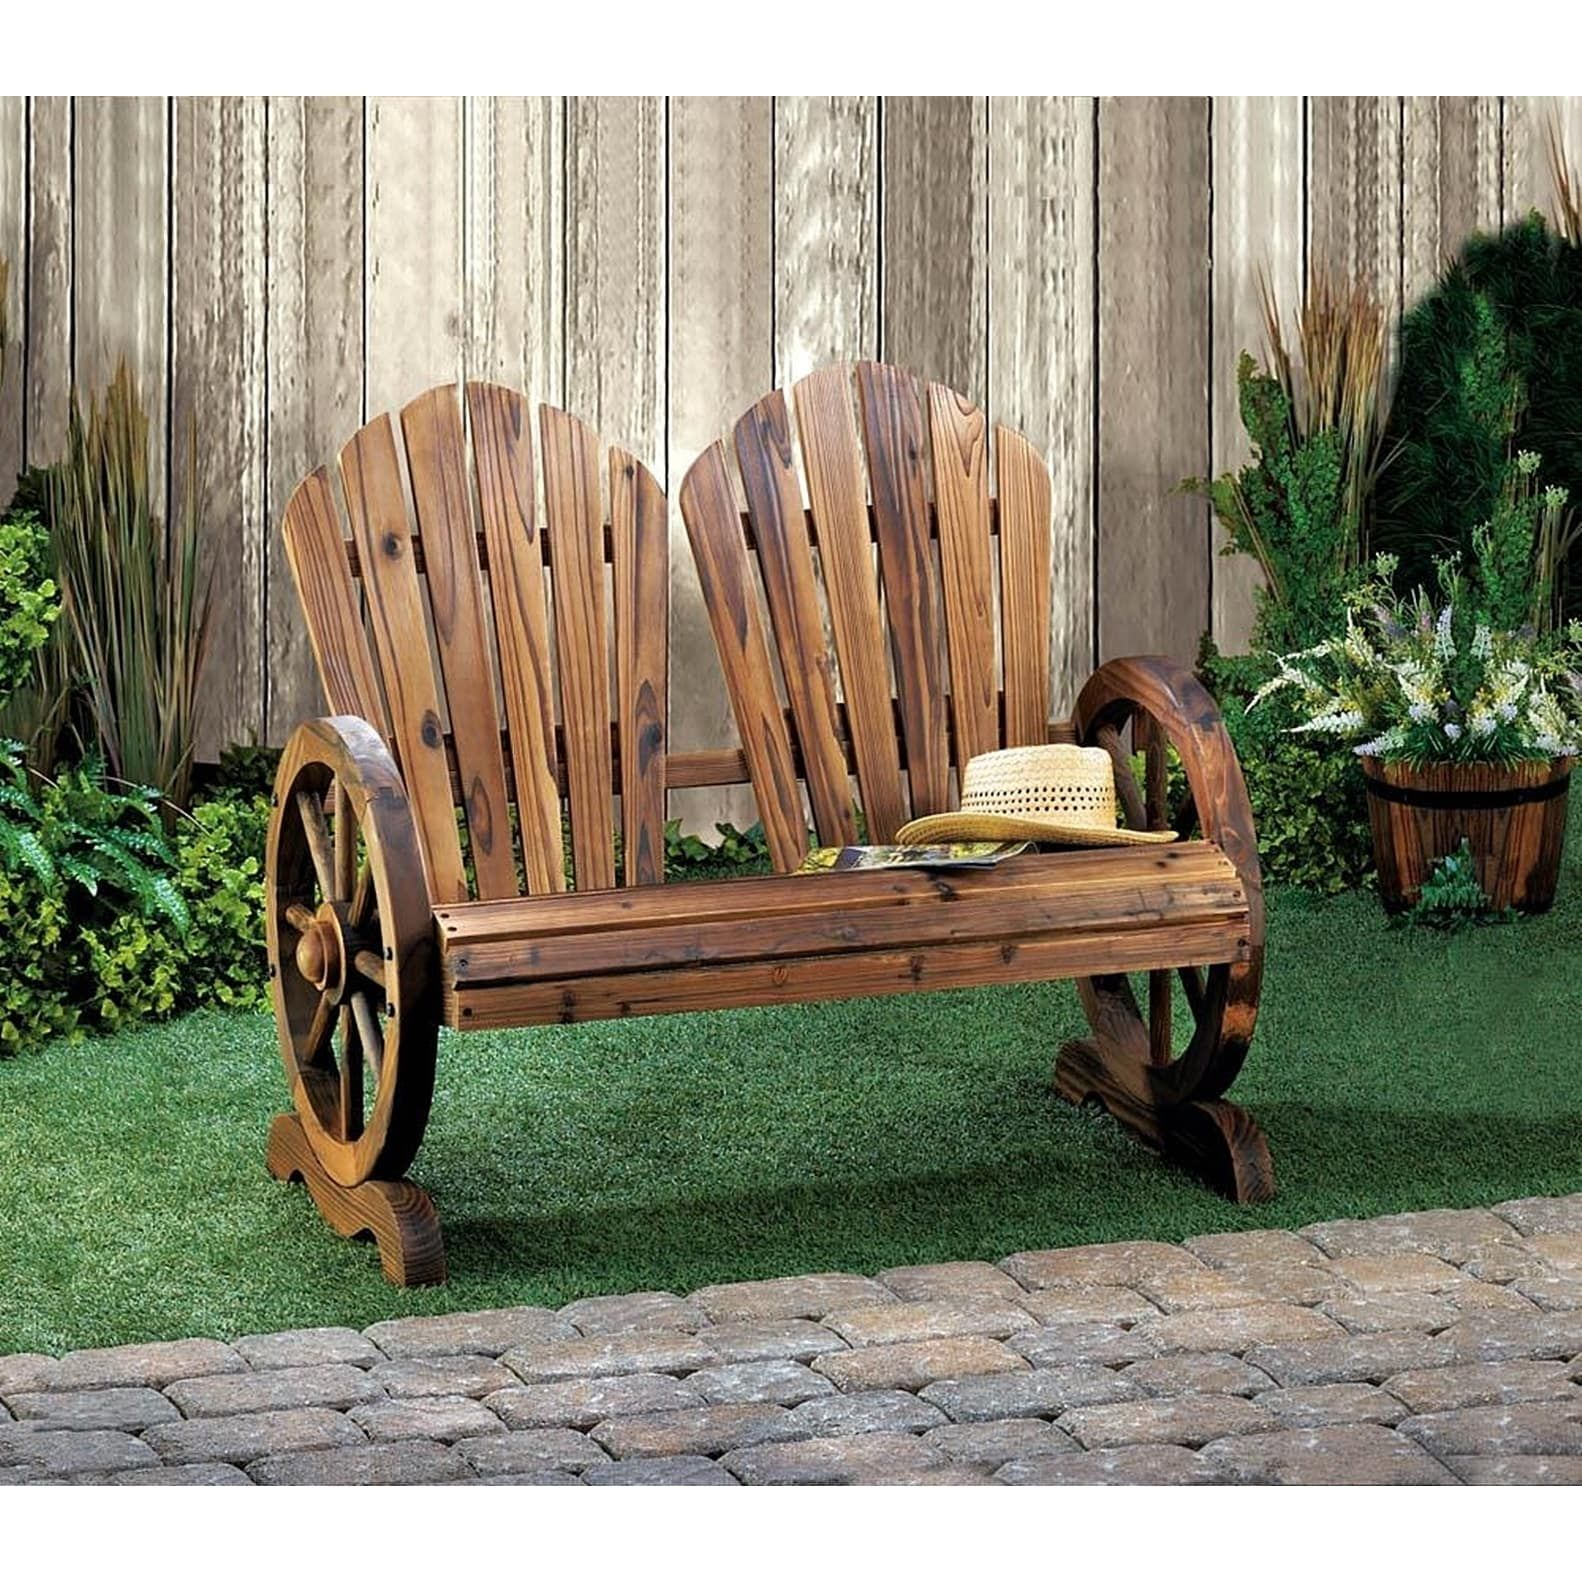 Olmstead Wooden Country-style Wagon Two Seater Brown